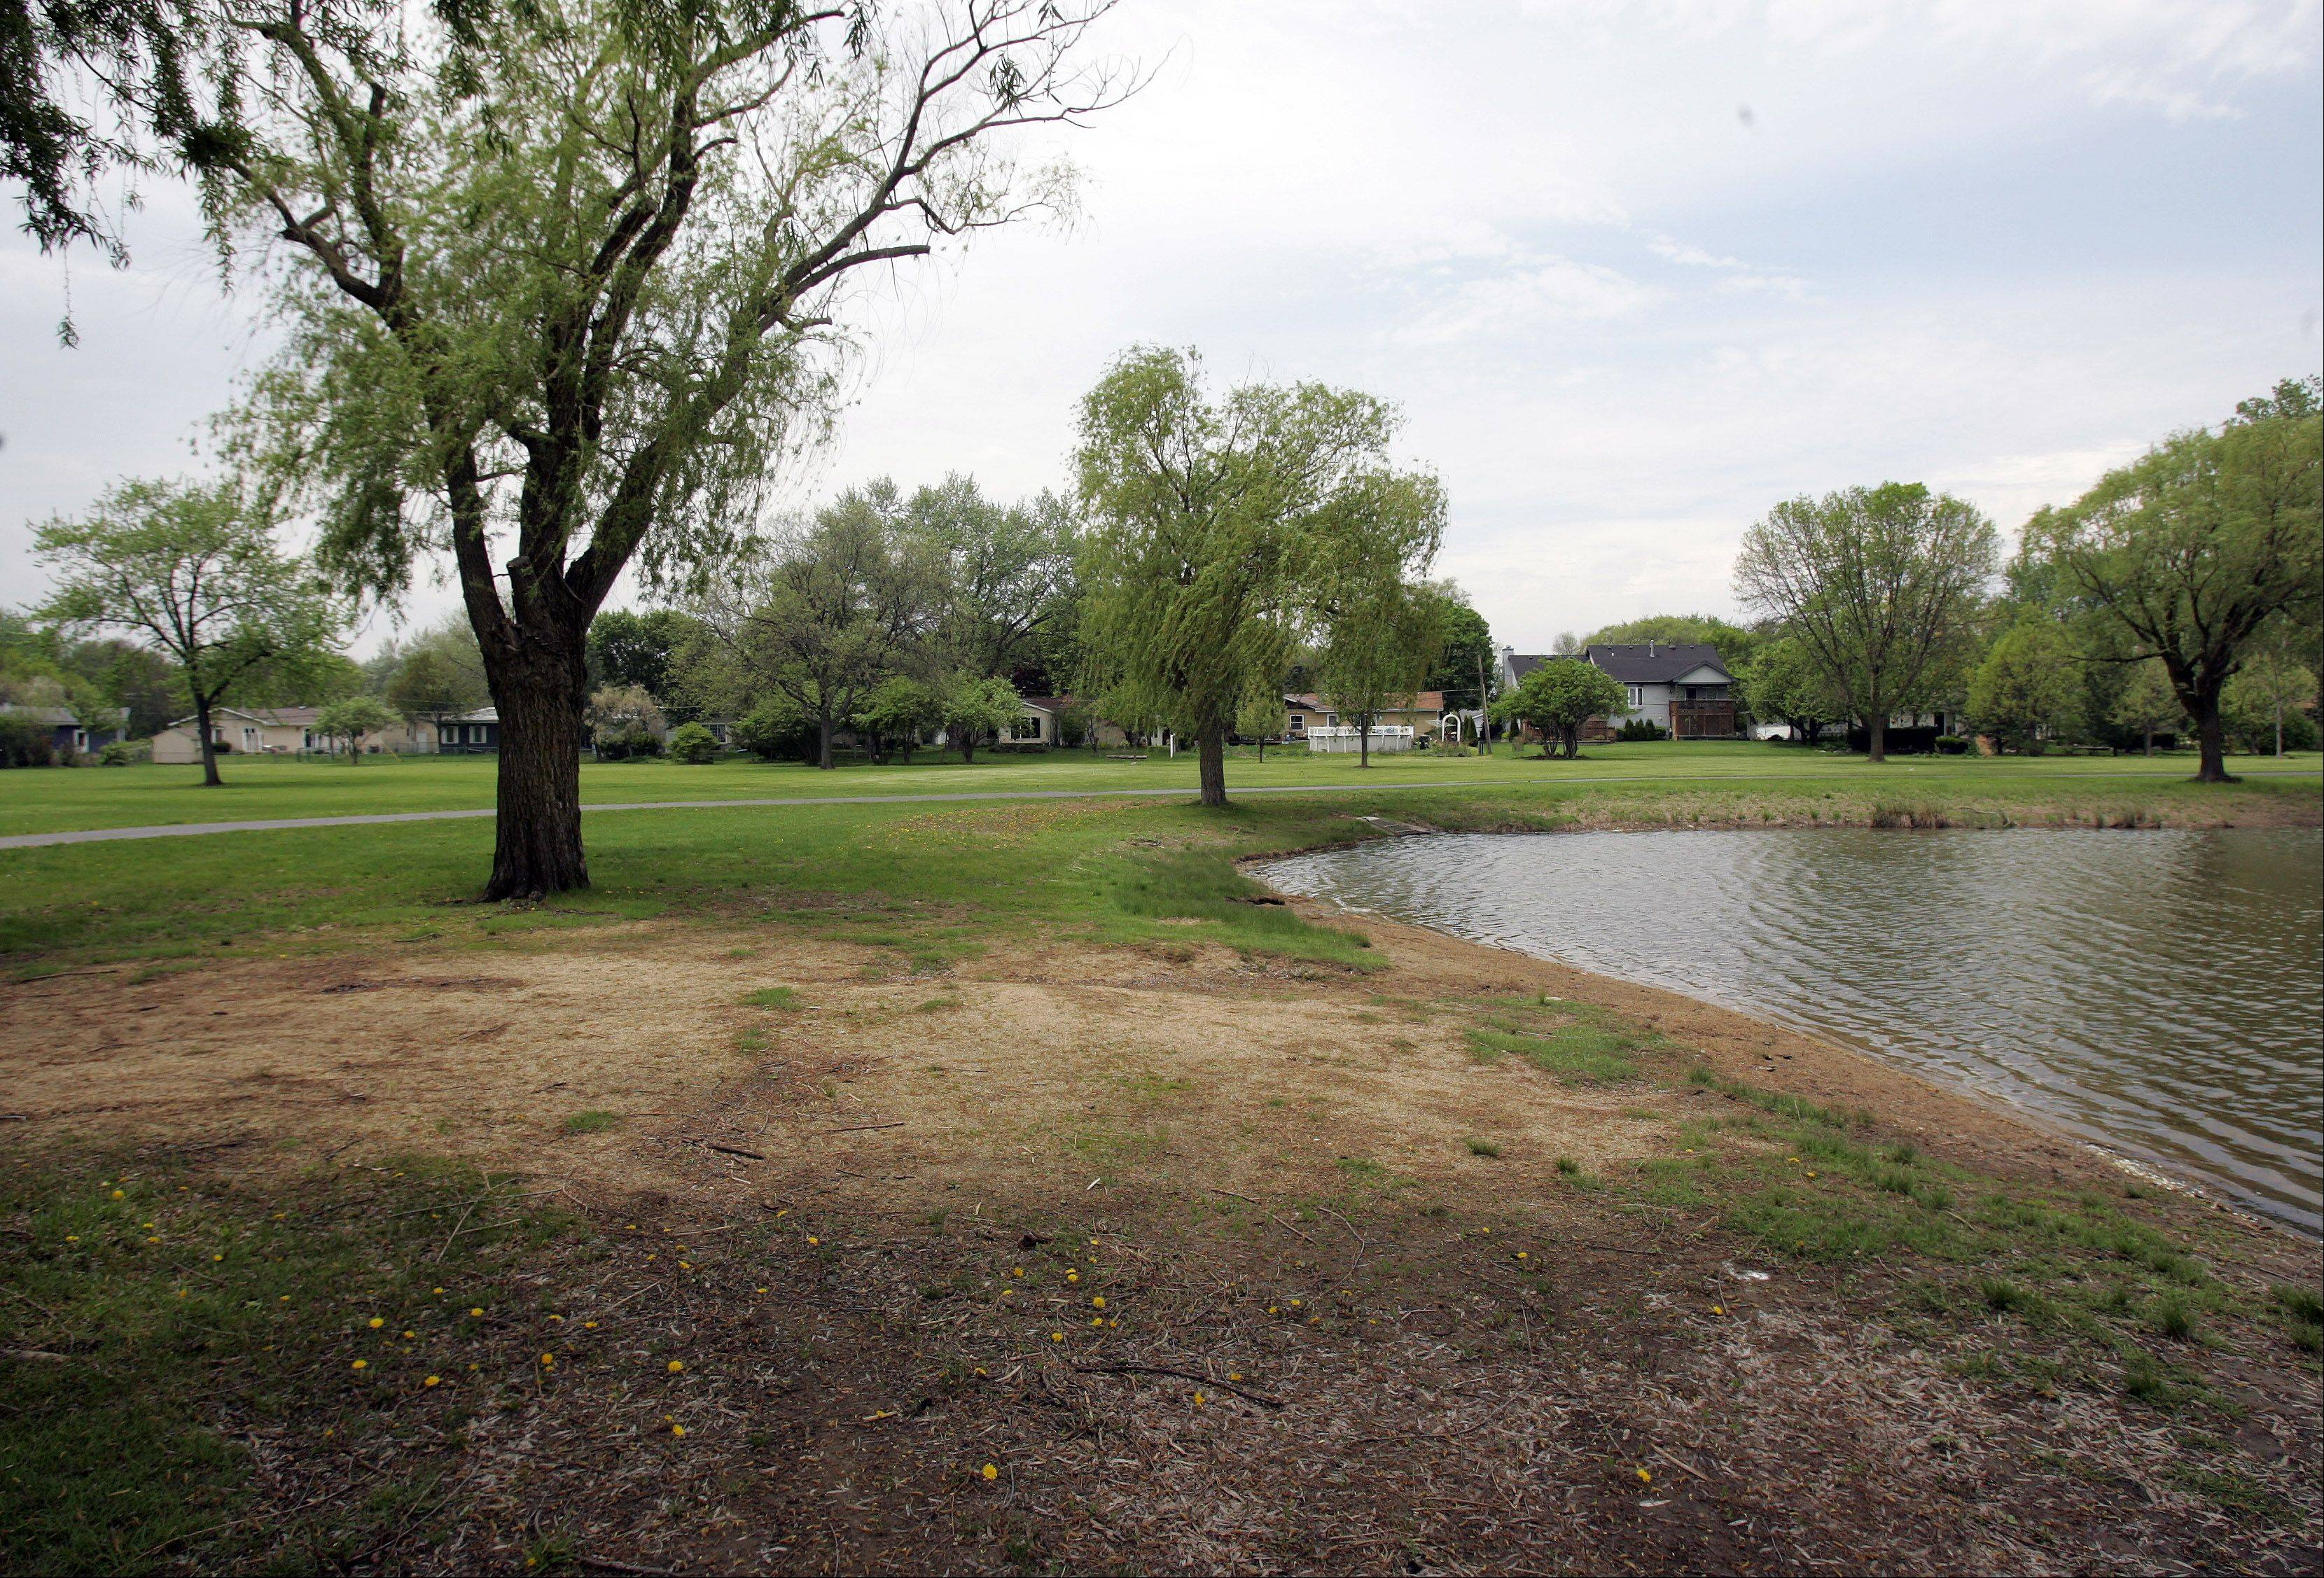 Installation of a water reservoir and pumping station has been proposed for Armstrong Park in Carol Stream, where significant flooding occurred in 2008 and 2010.